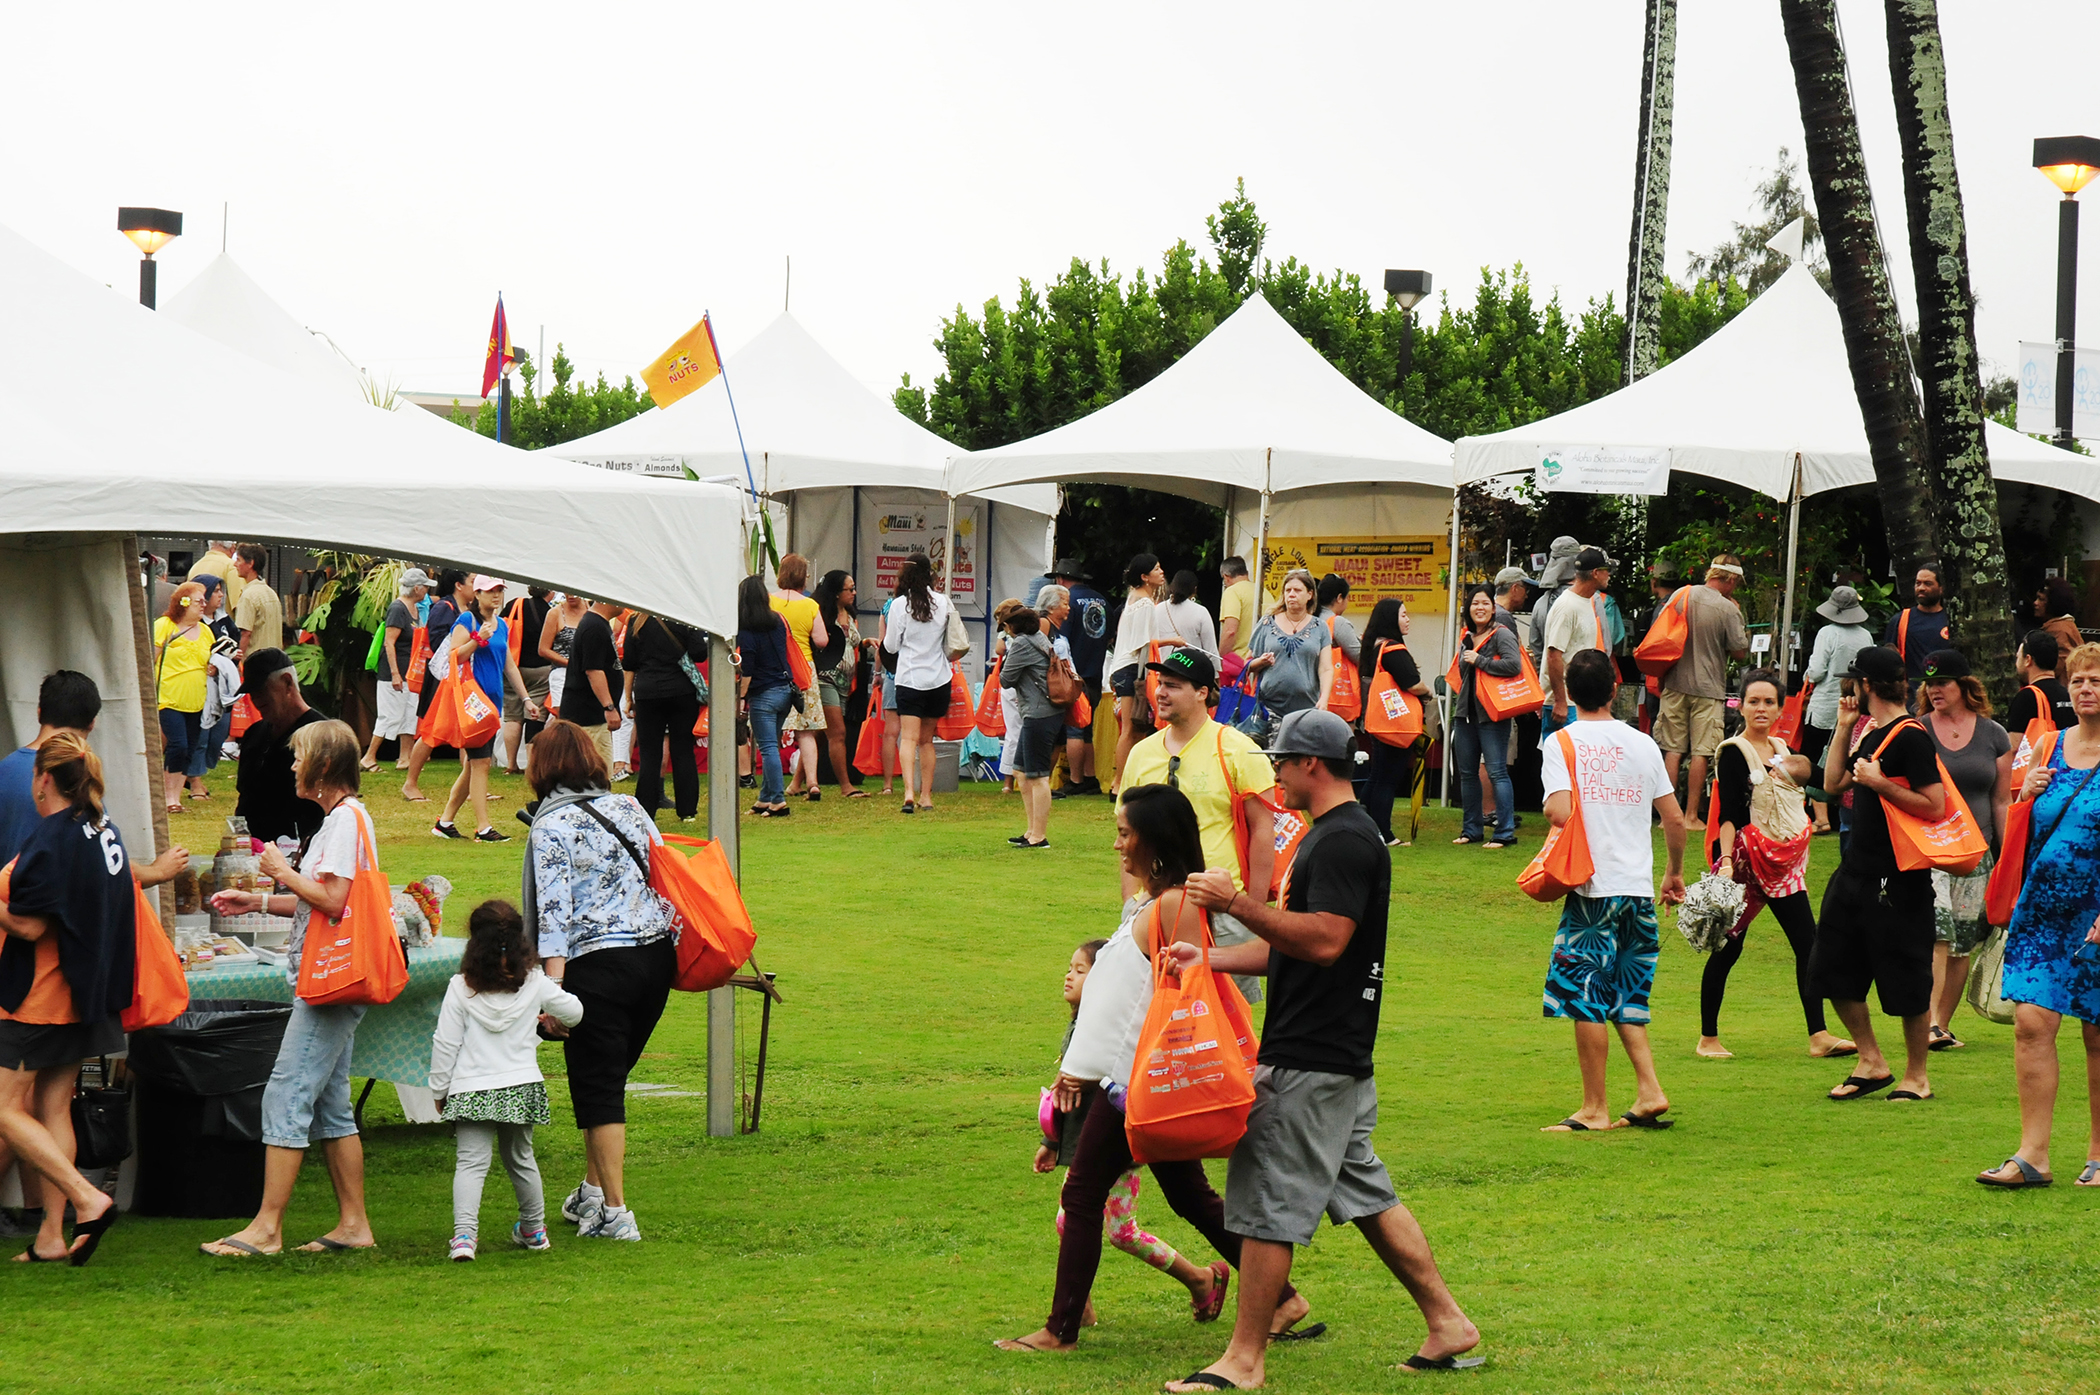 The inaugural Made in Maui County Festival in 2014 attracted thousands of visitors and residents for a full day of shopping, activities, food and fun. This year, the Festival's organizers anticipate the event will be bigger and better than ever!